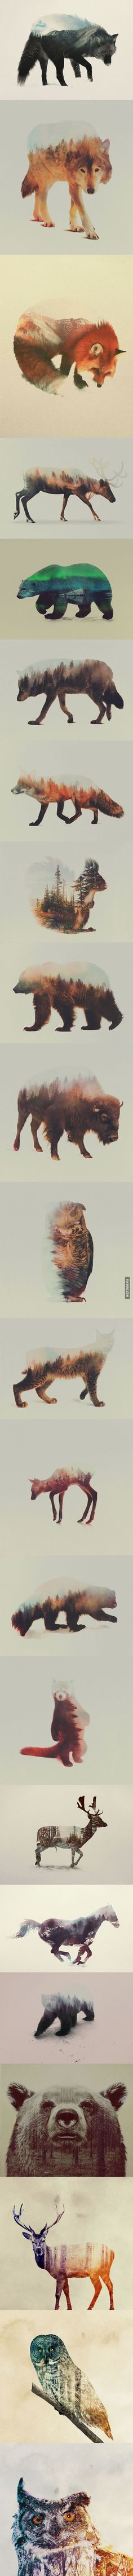 Andreas Lie, Art, Double Exposure Animals